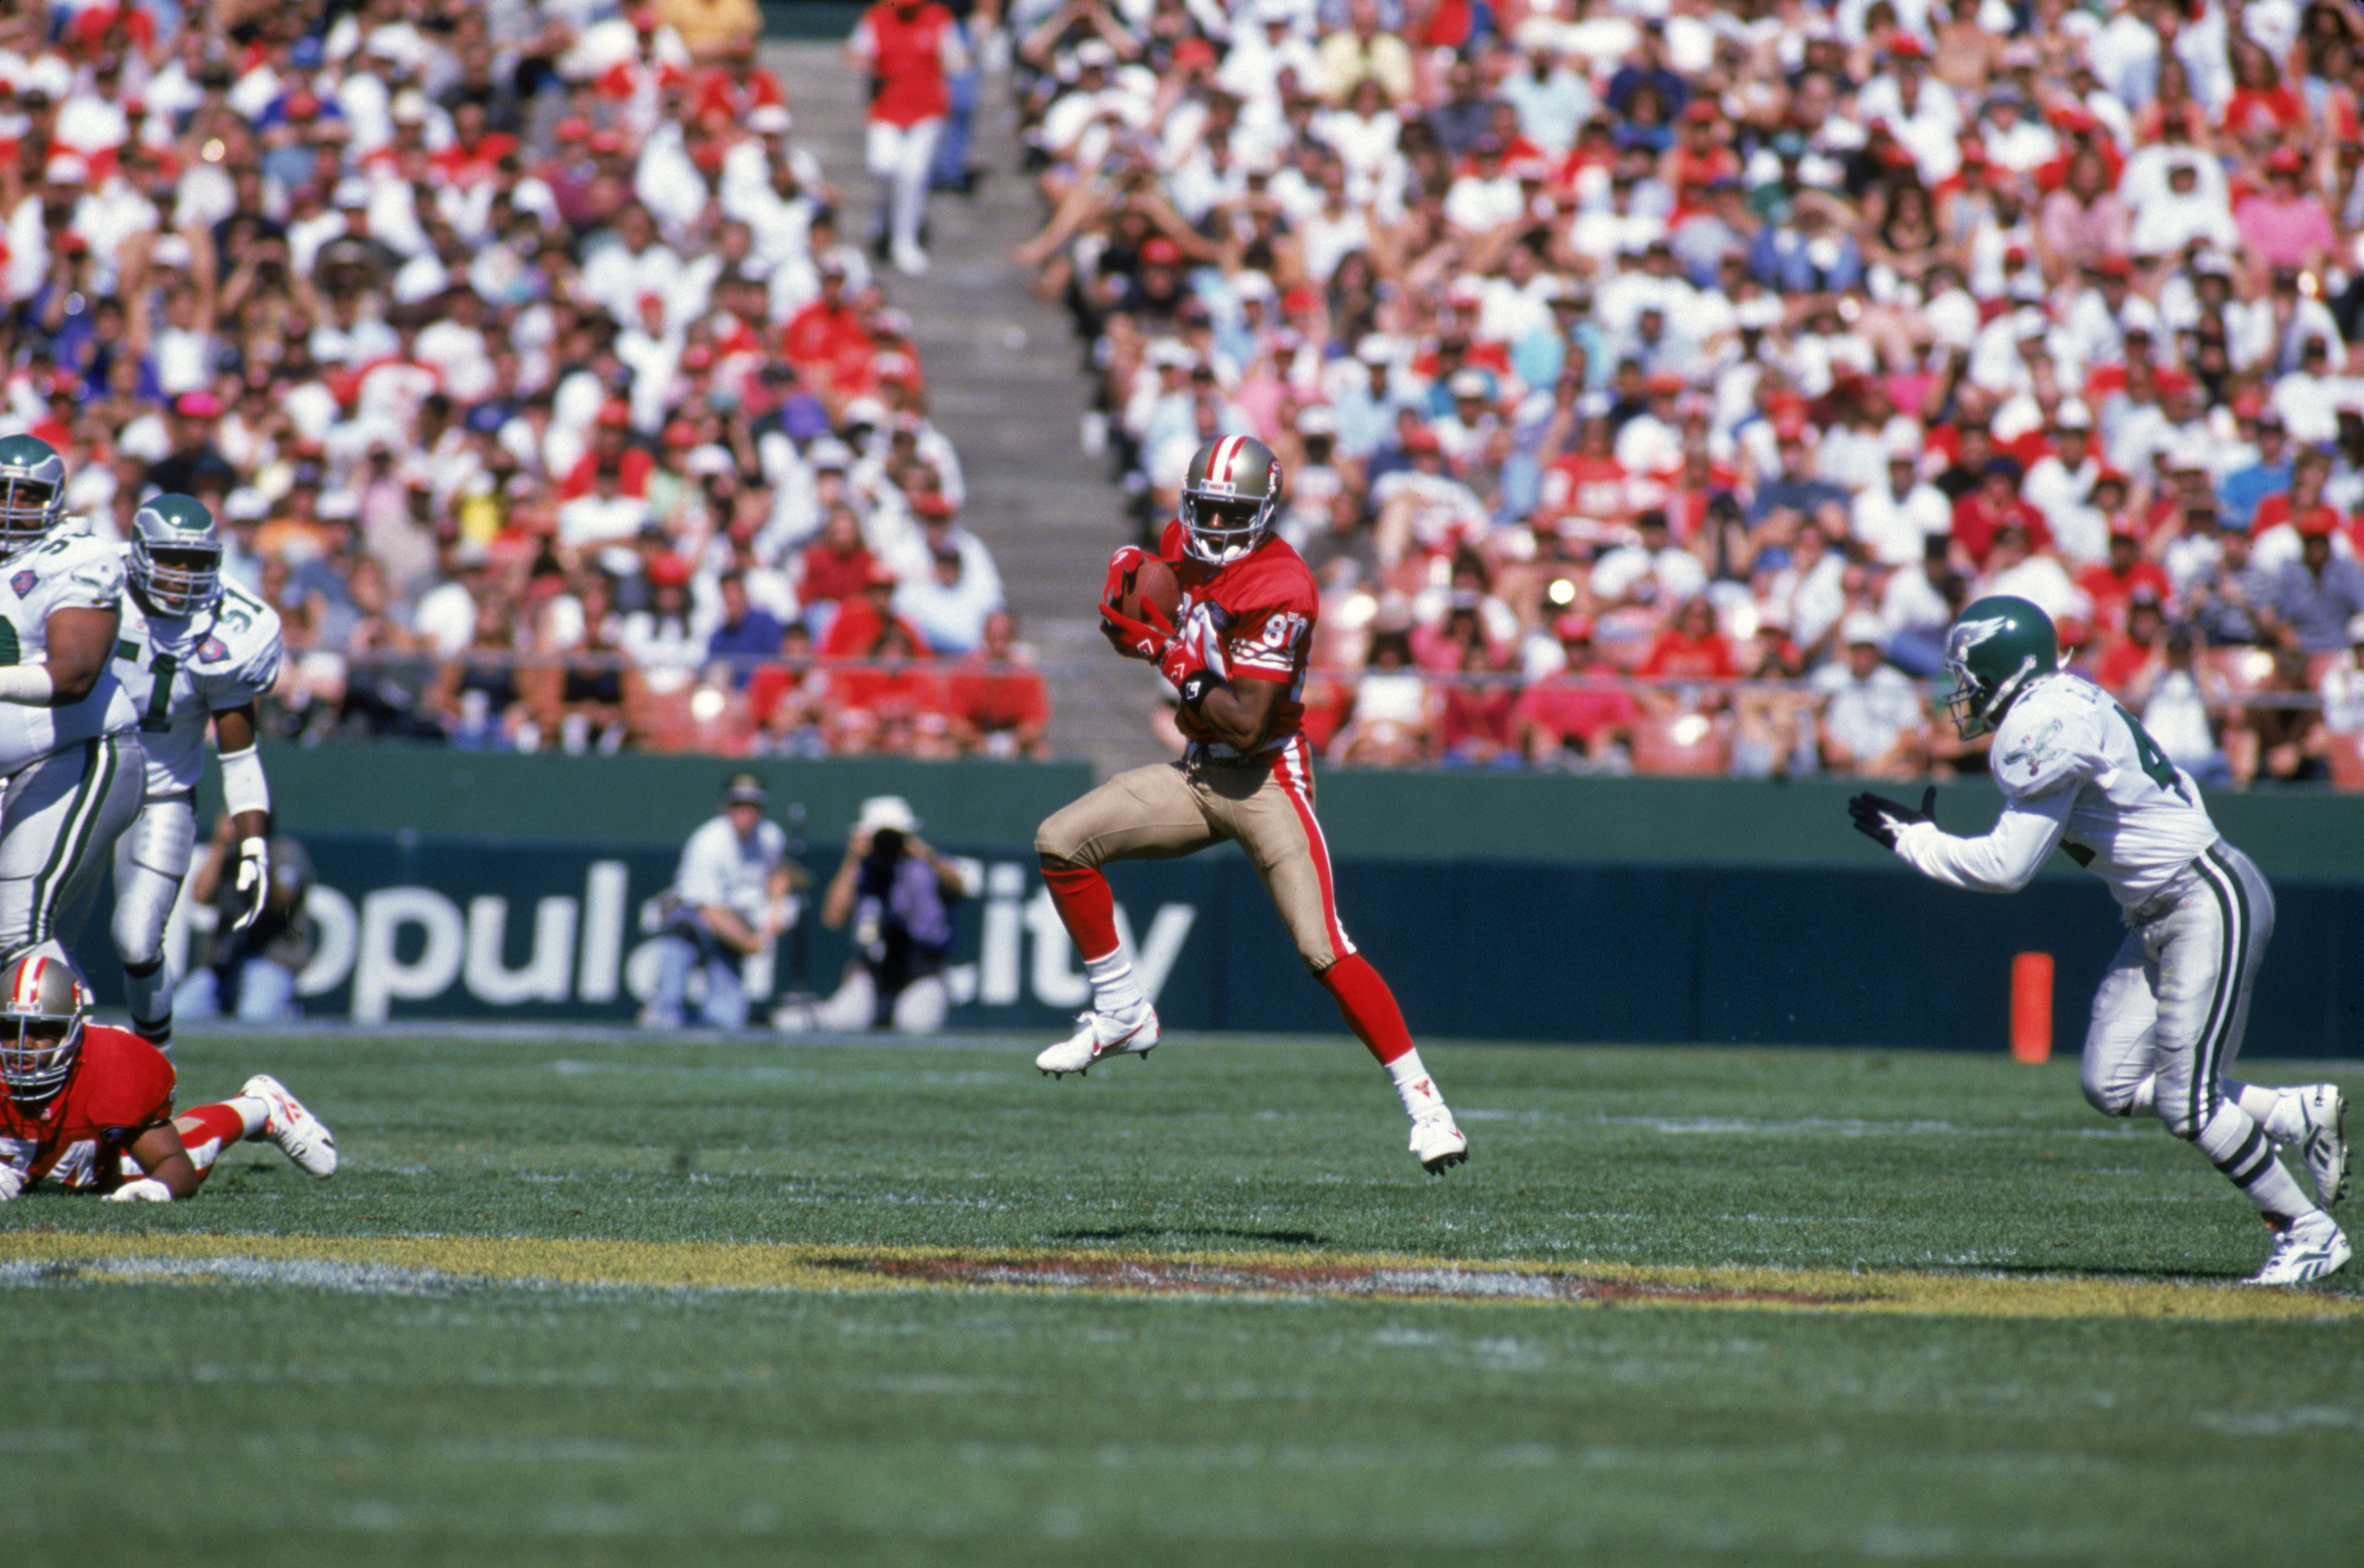 SAN FRANCISCO - OCTOBER 2:  Wide receiver Jerry Rice #80 of the San Francisco 49ers finds room to run against Philadelphia Eagles defense during a game at Candlestick Park on October 2, 1994 in San Francisco, California.  The Eagles won 40-8.  (Photo by G